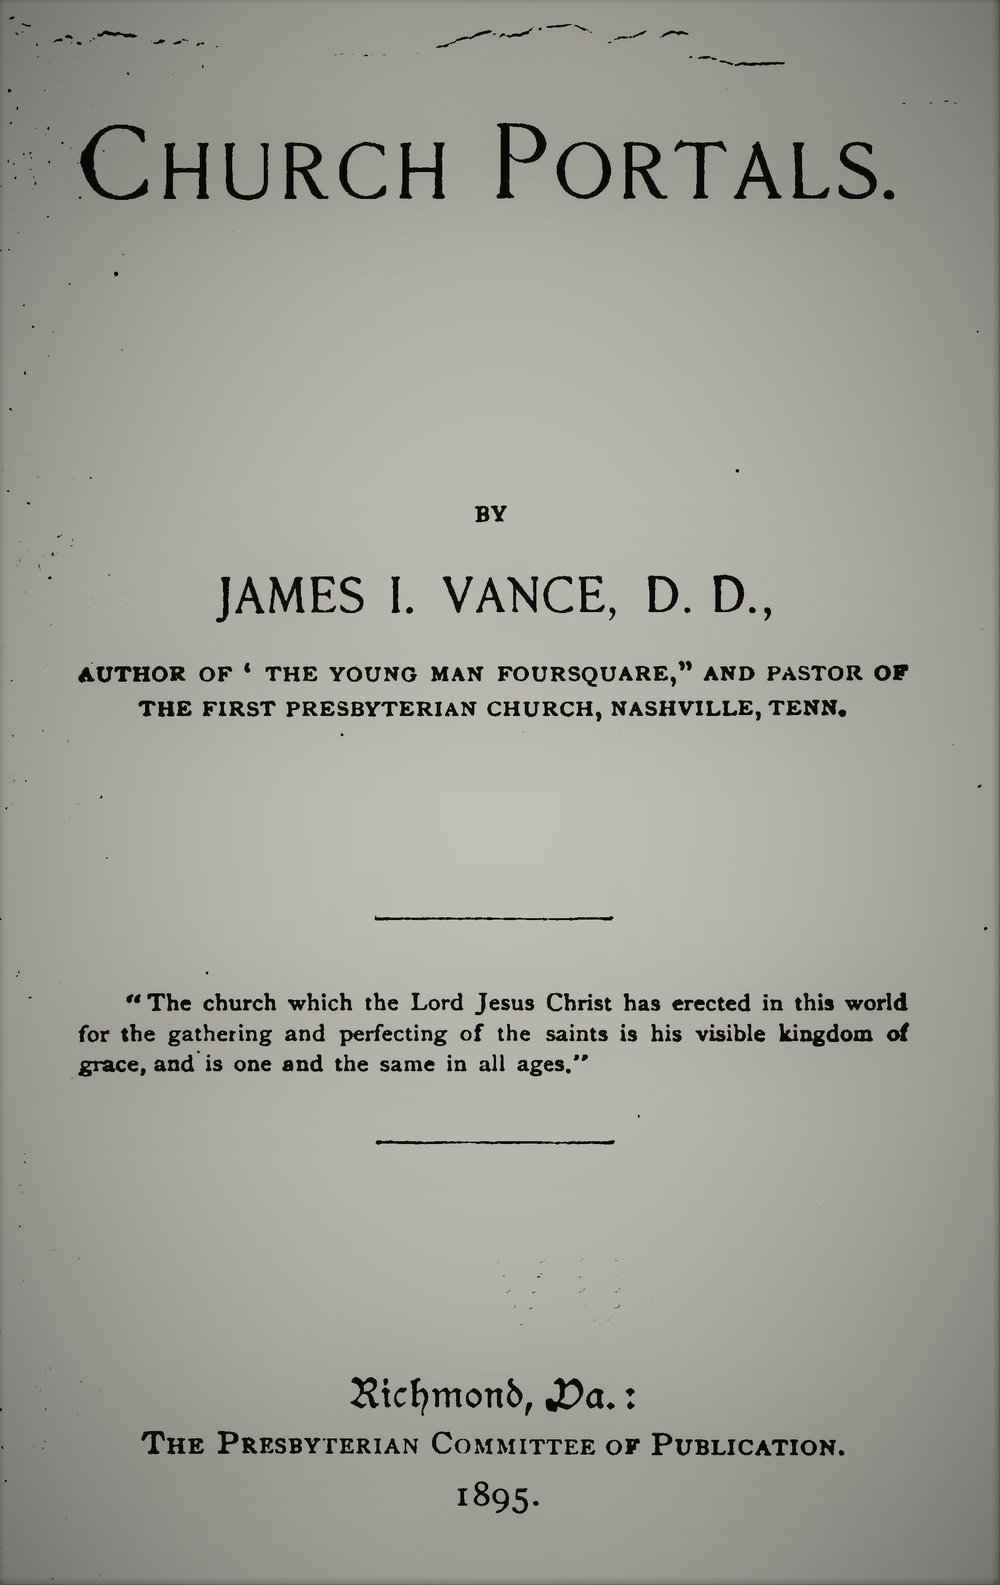 Vance, James - Church Portals.jpg